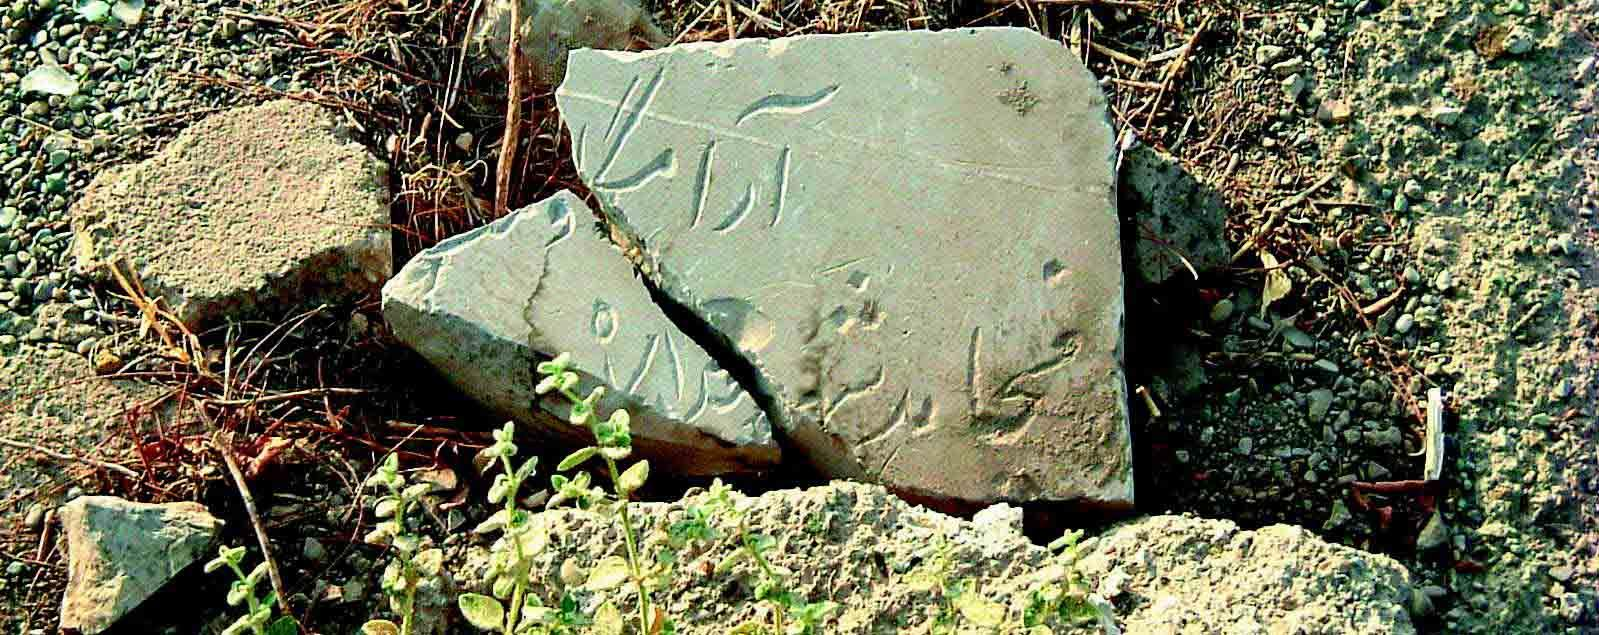 Tombstone of a Mojahedin member desecrated by government agents ‎